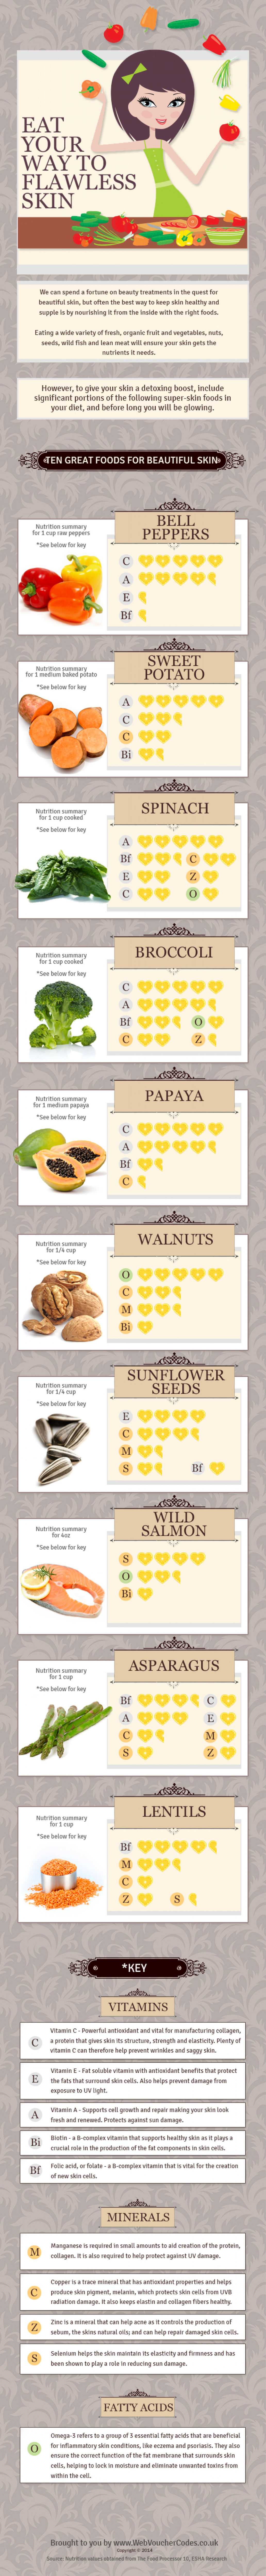 Top Ten Foods for Beautiful Skin Infographic